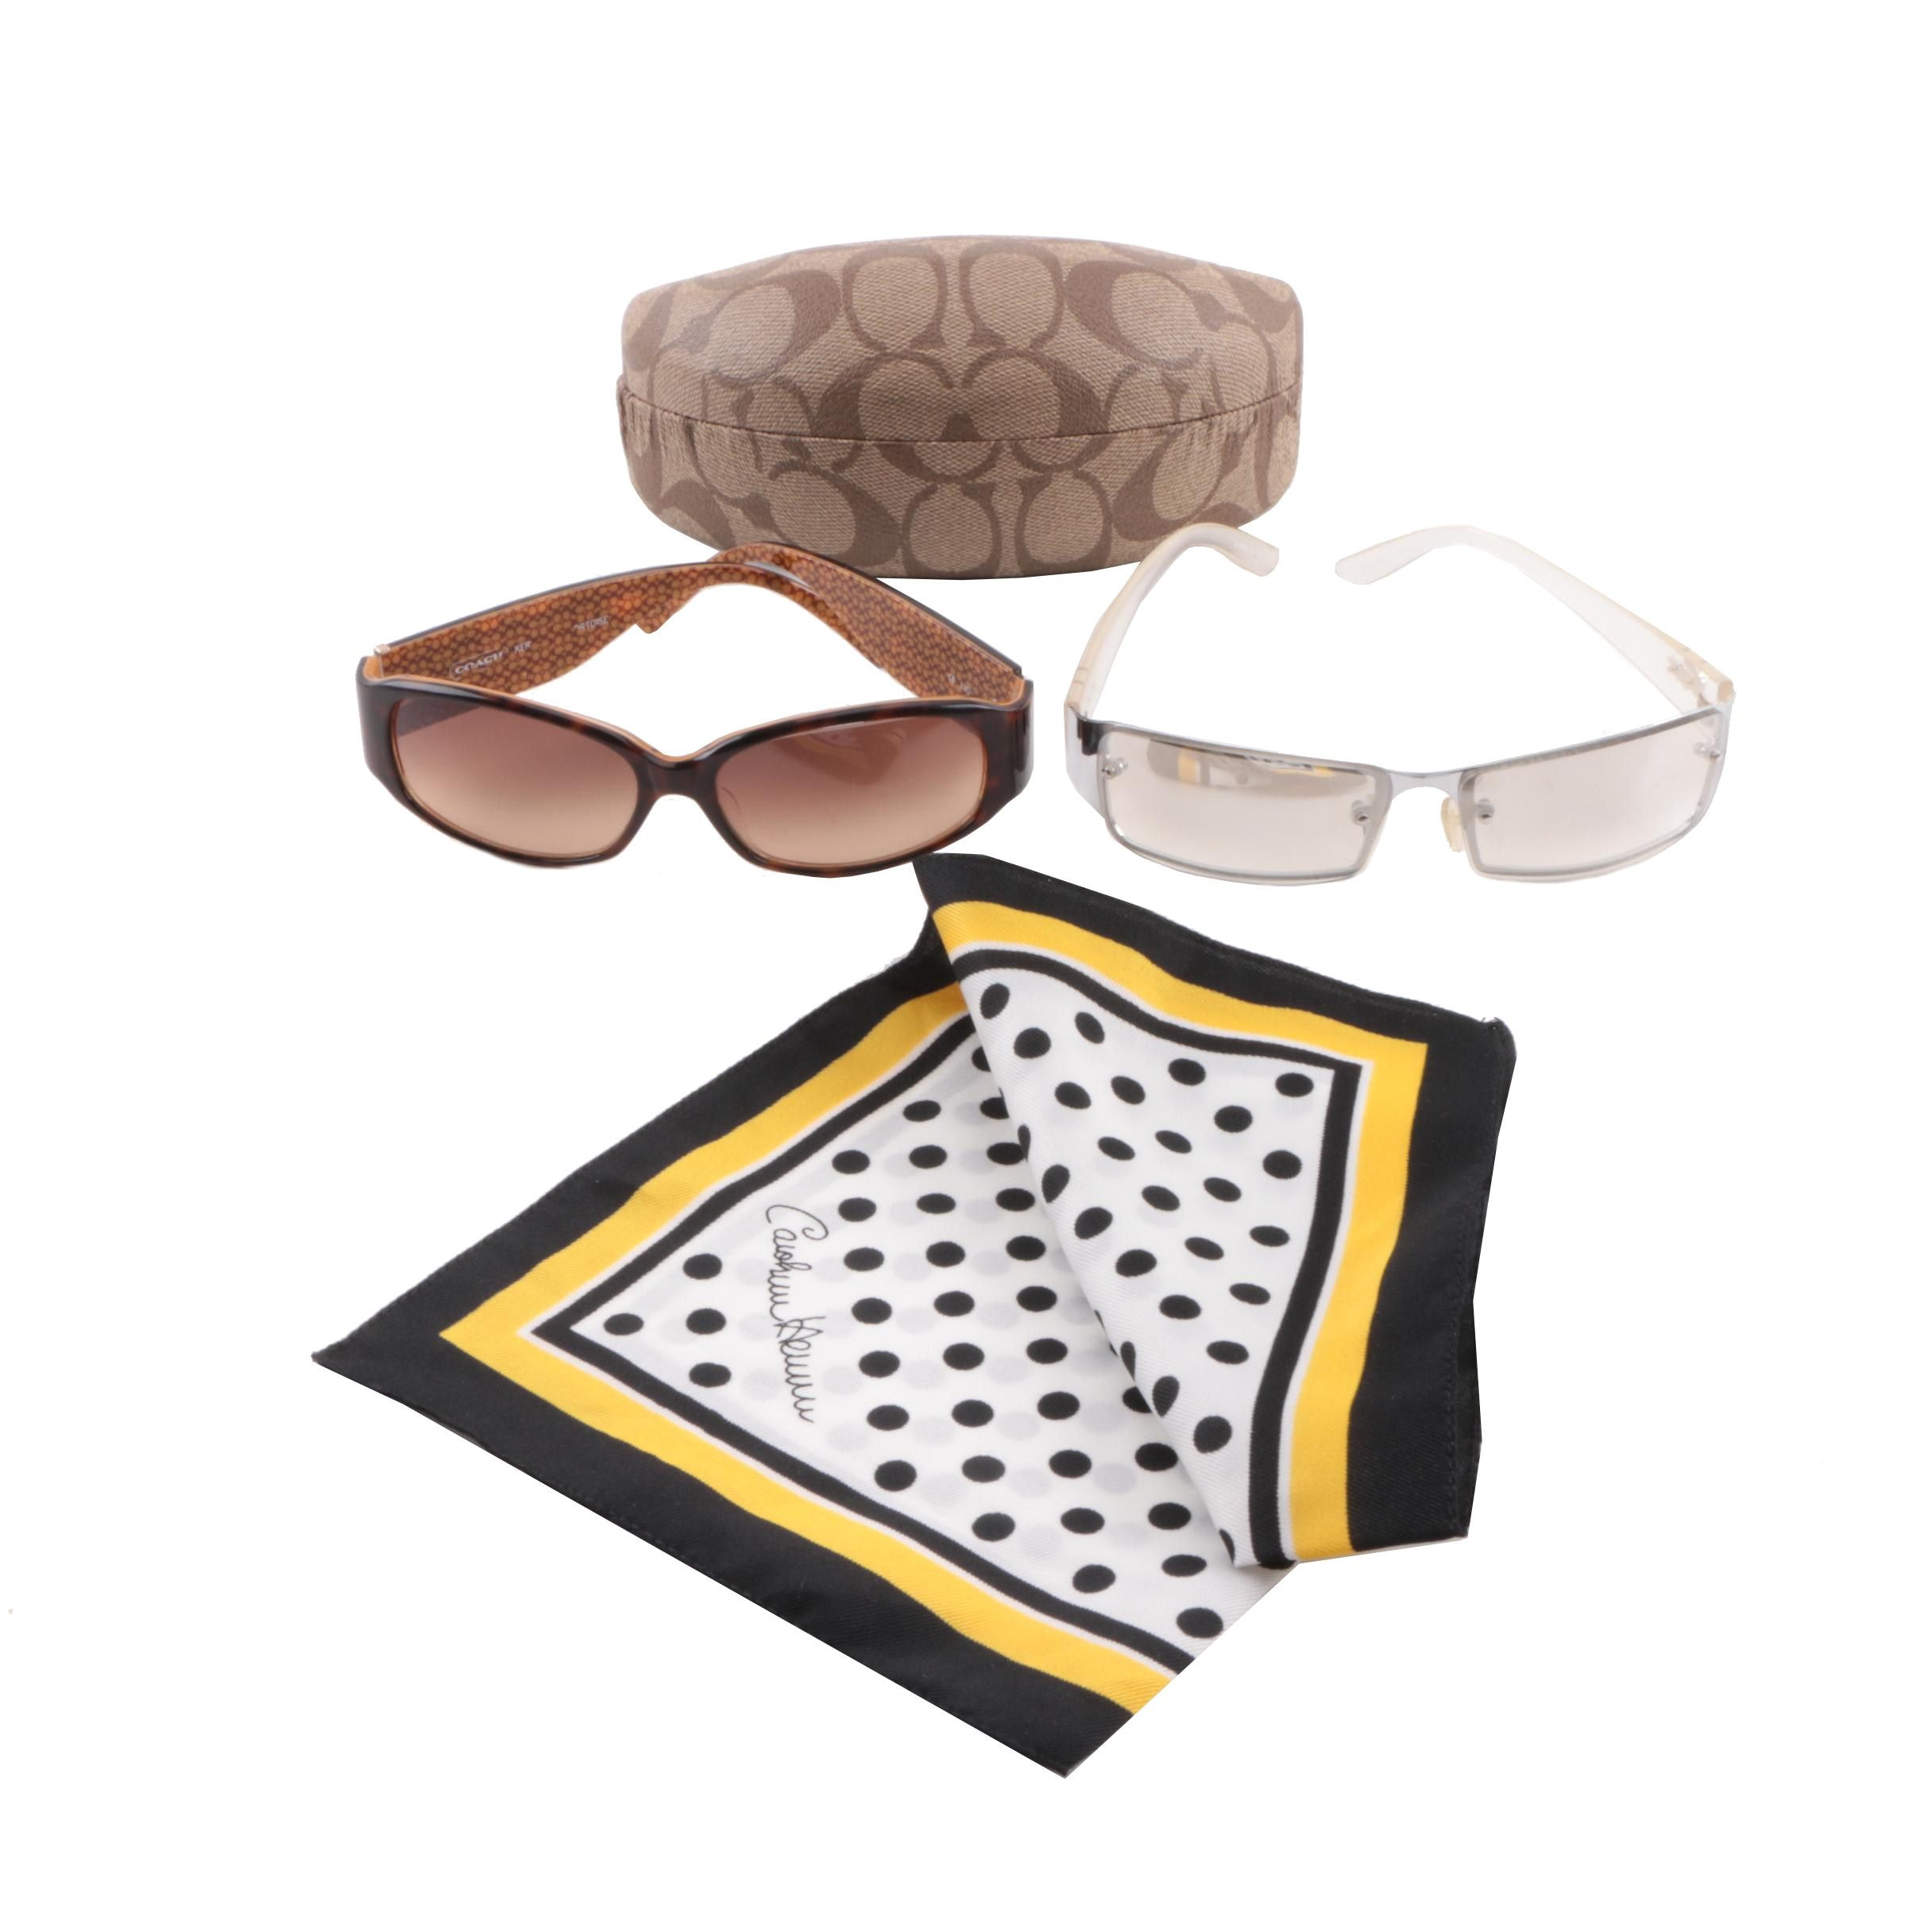 Coach Tortoise Style and Lacoste Sunglasses with Herrera Pocket Square